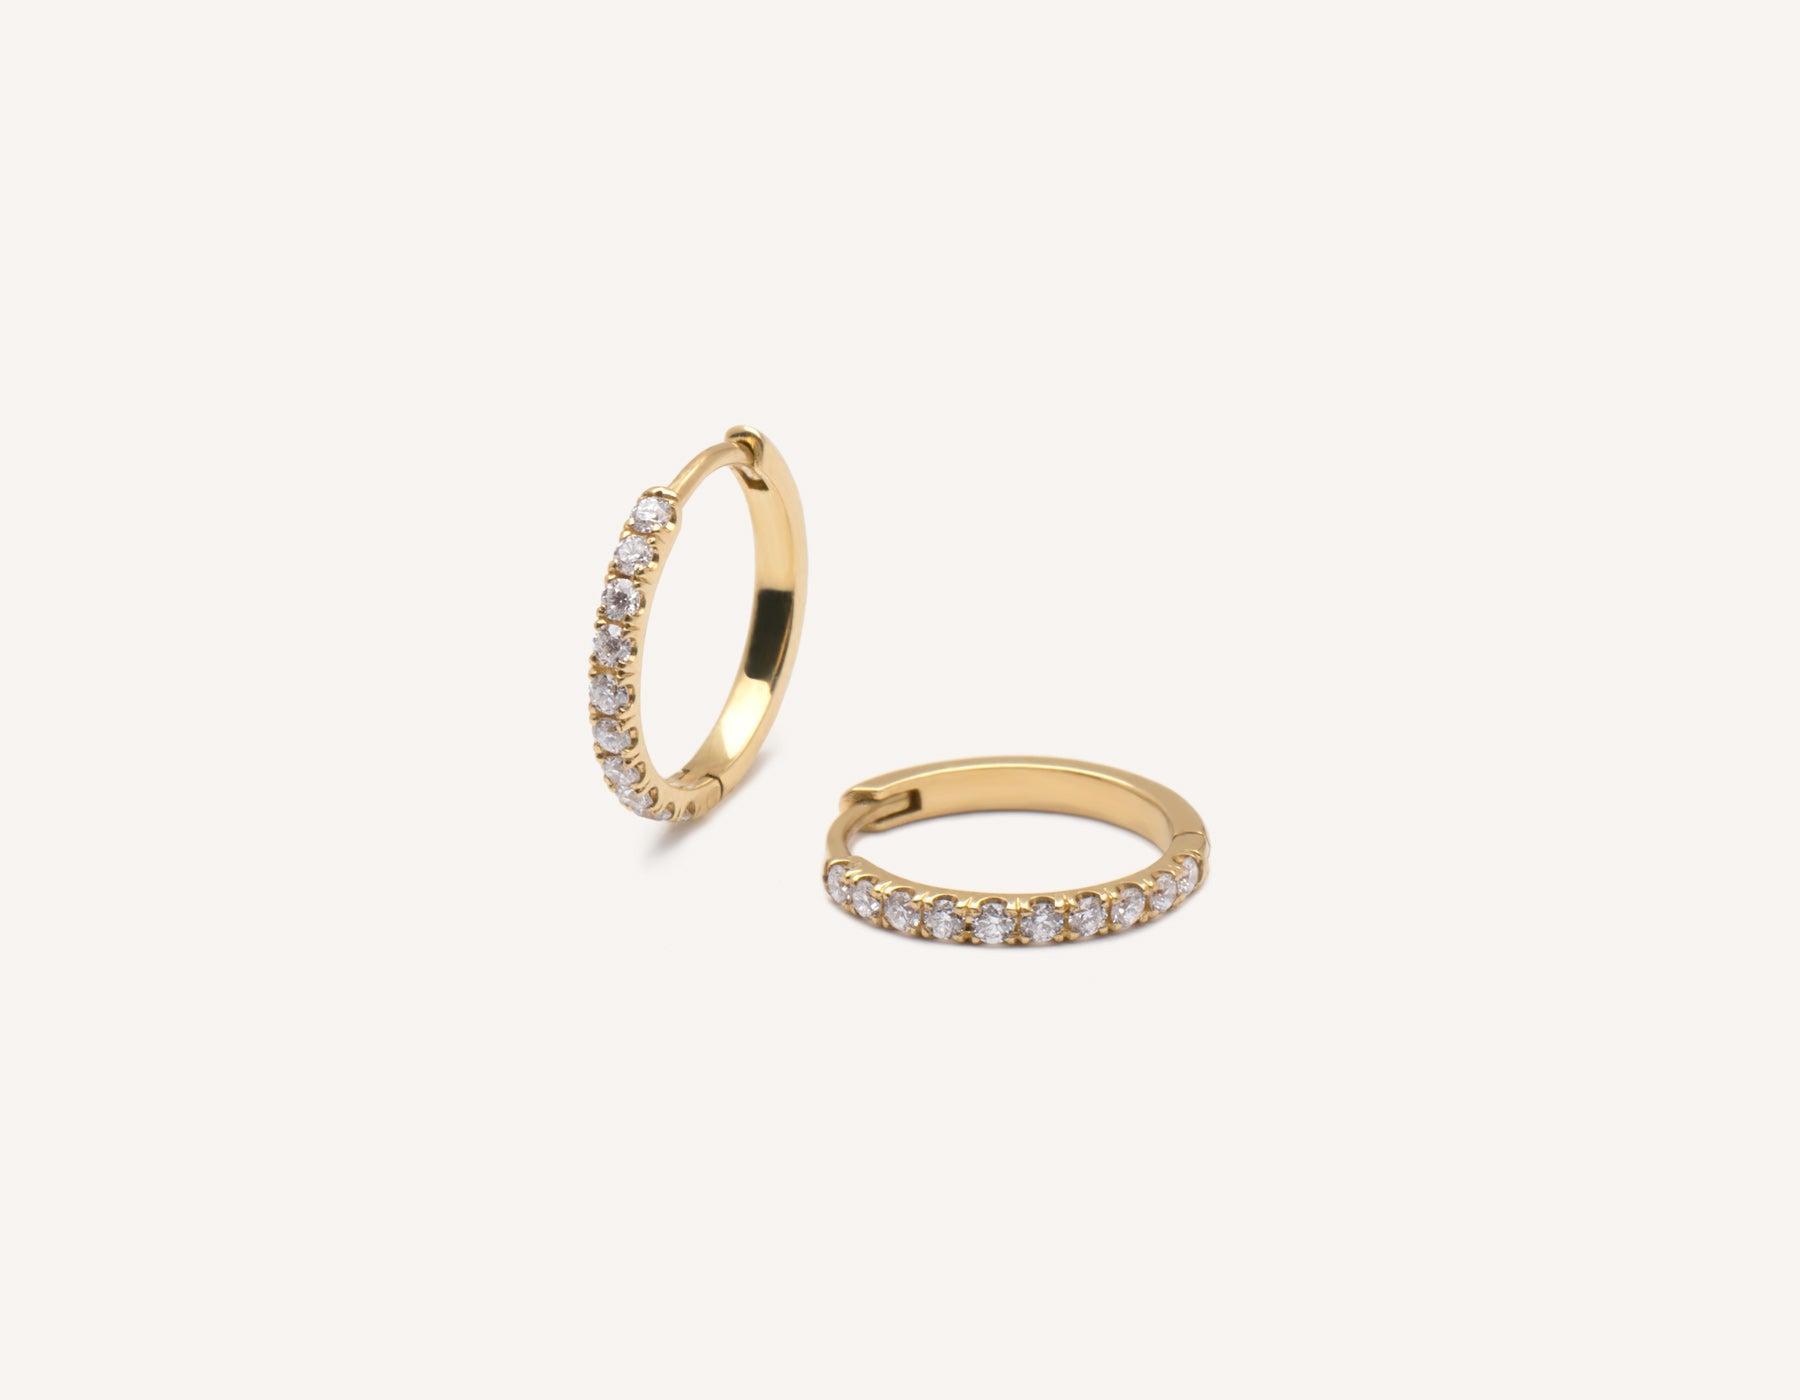 Simple classic 14k solid gold Medium Pave Diamond Huggie Hoops Earrings Vrai and Oro, 14K Yellow Gold